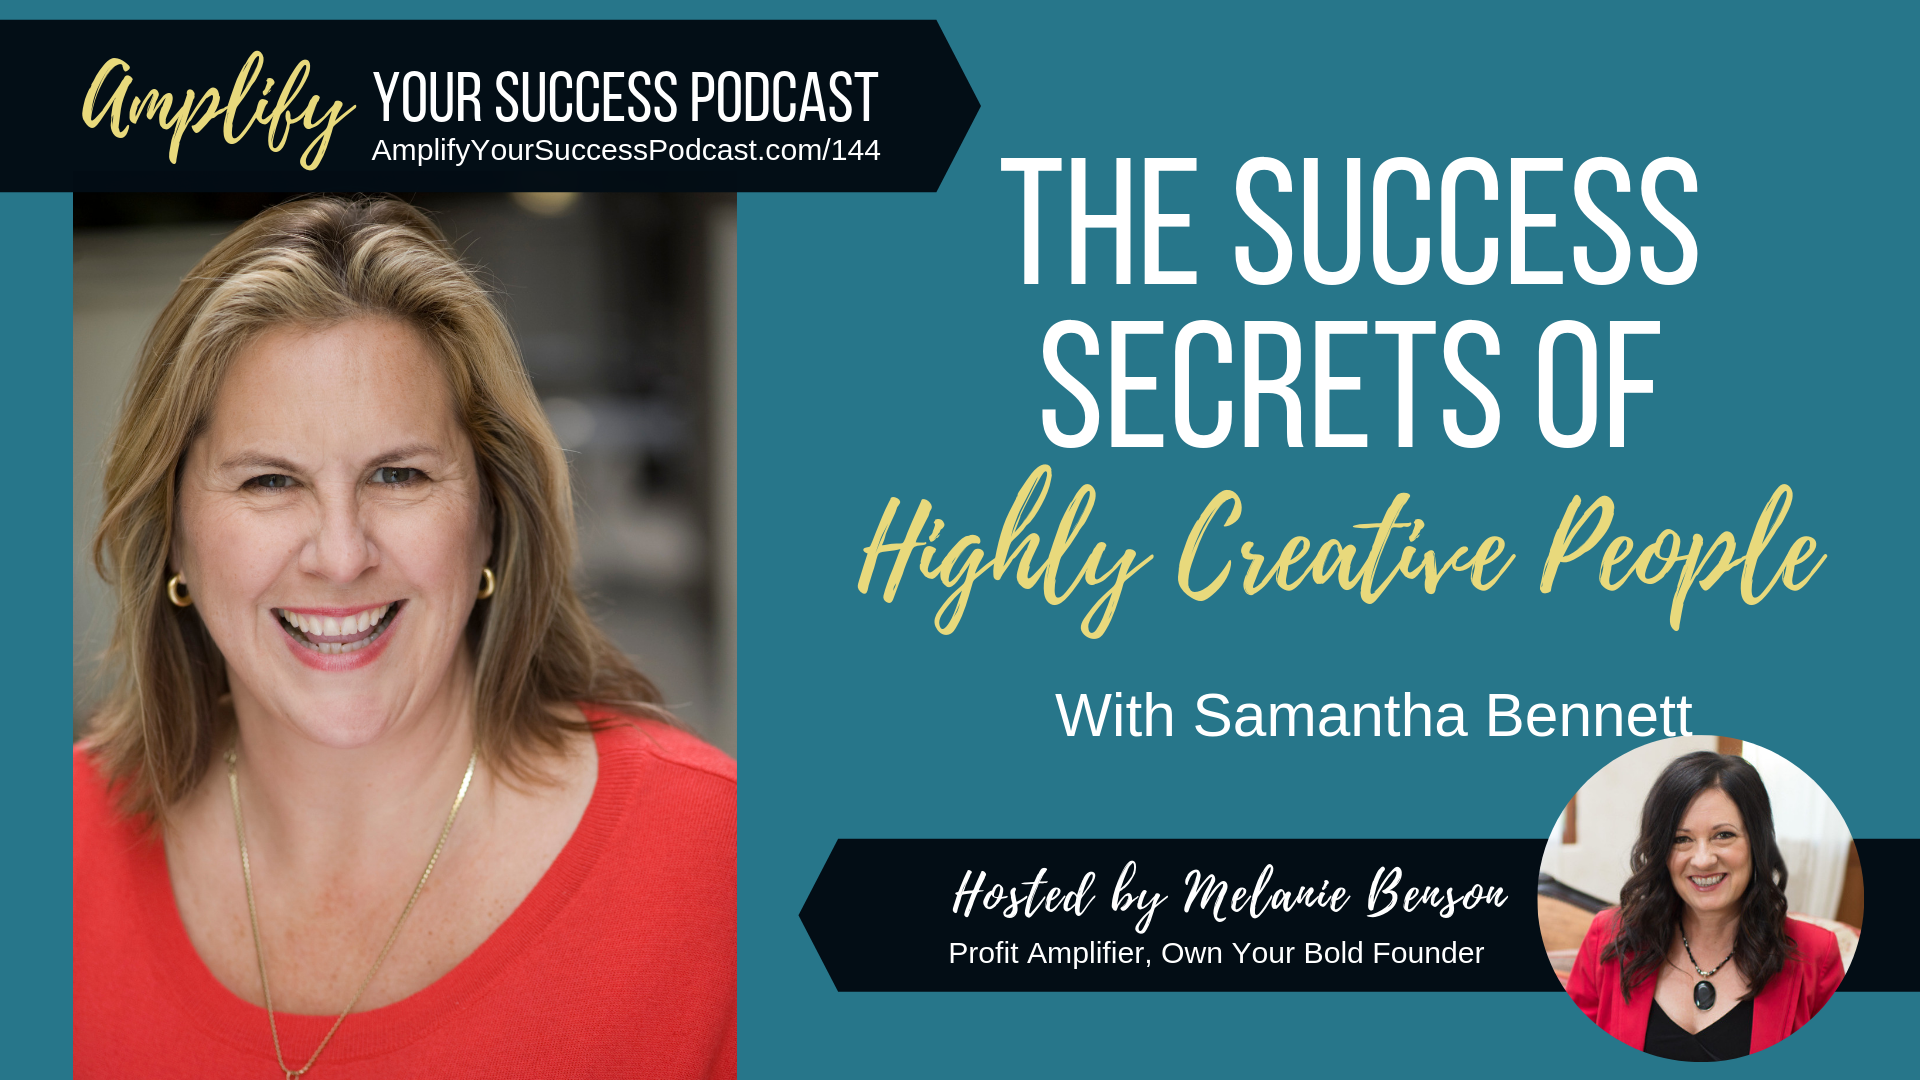 The Success Secrets of Highly Creative People with Samantha Bennett